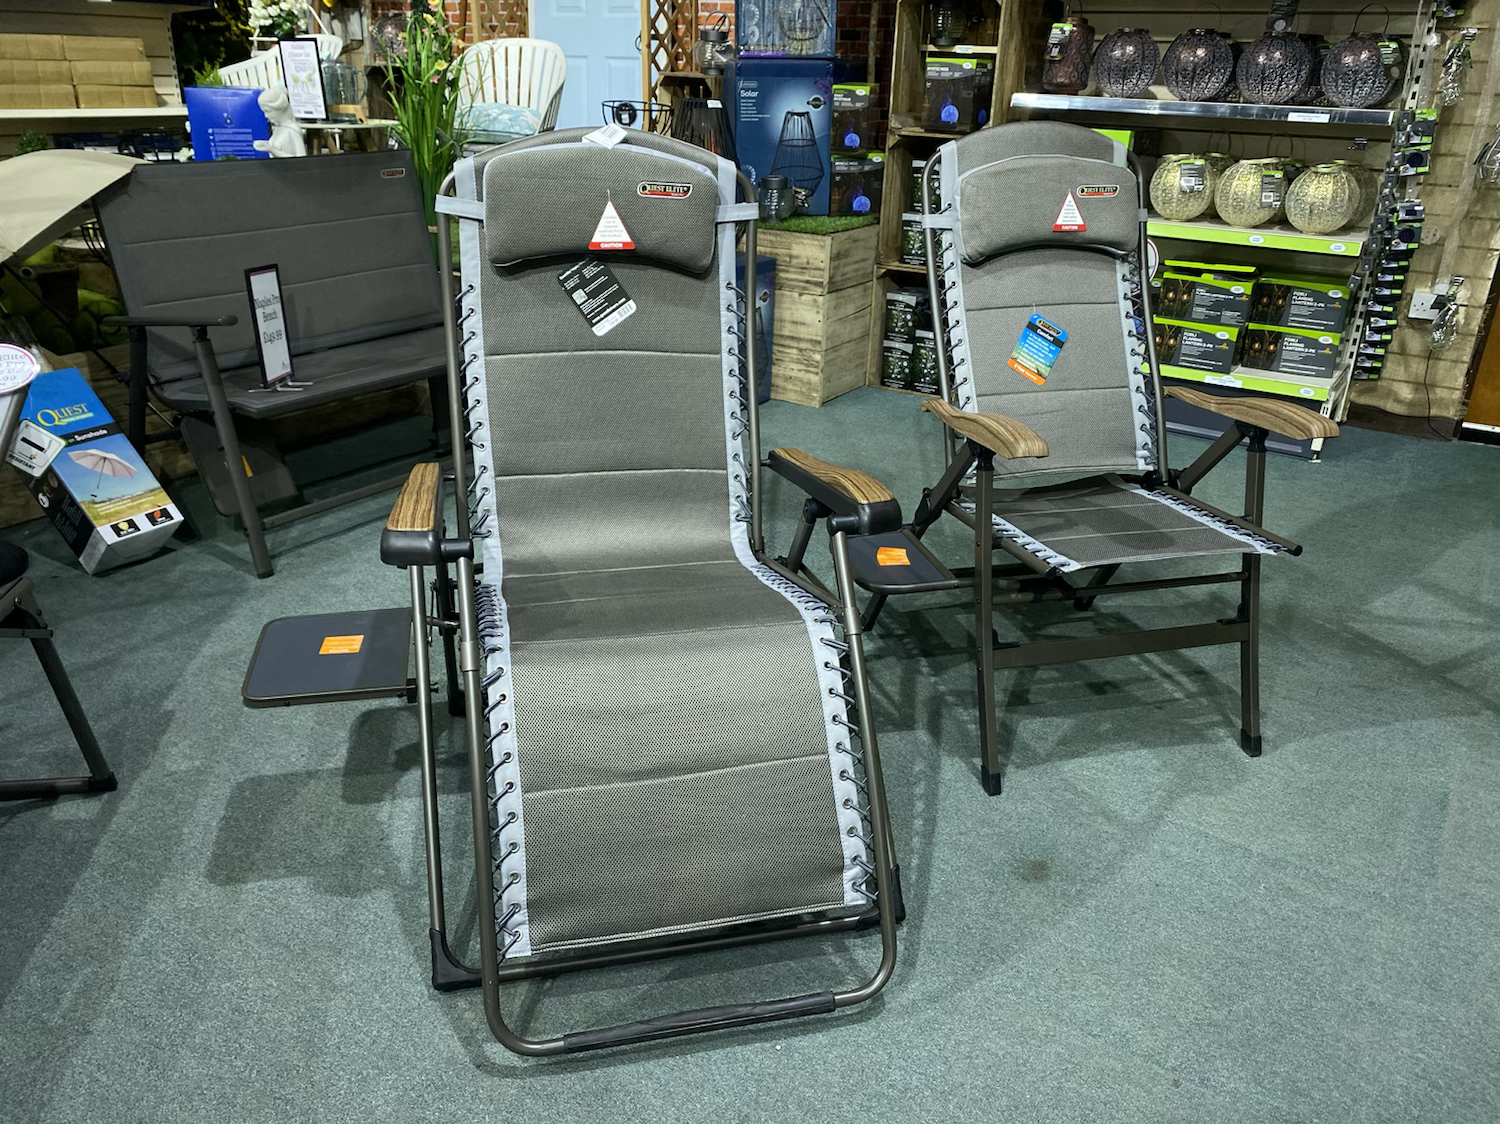 Quest Elite Naples Pro Comfort Gravity Relaxer - £159.99 & Recliner - £119.99